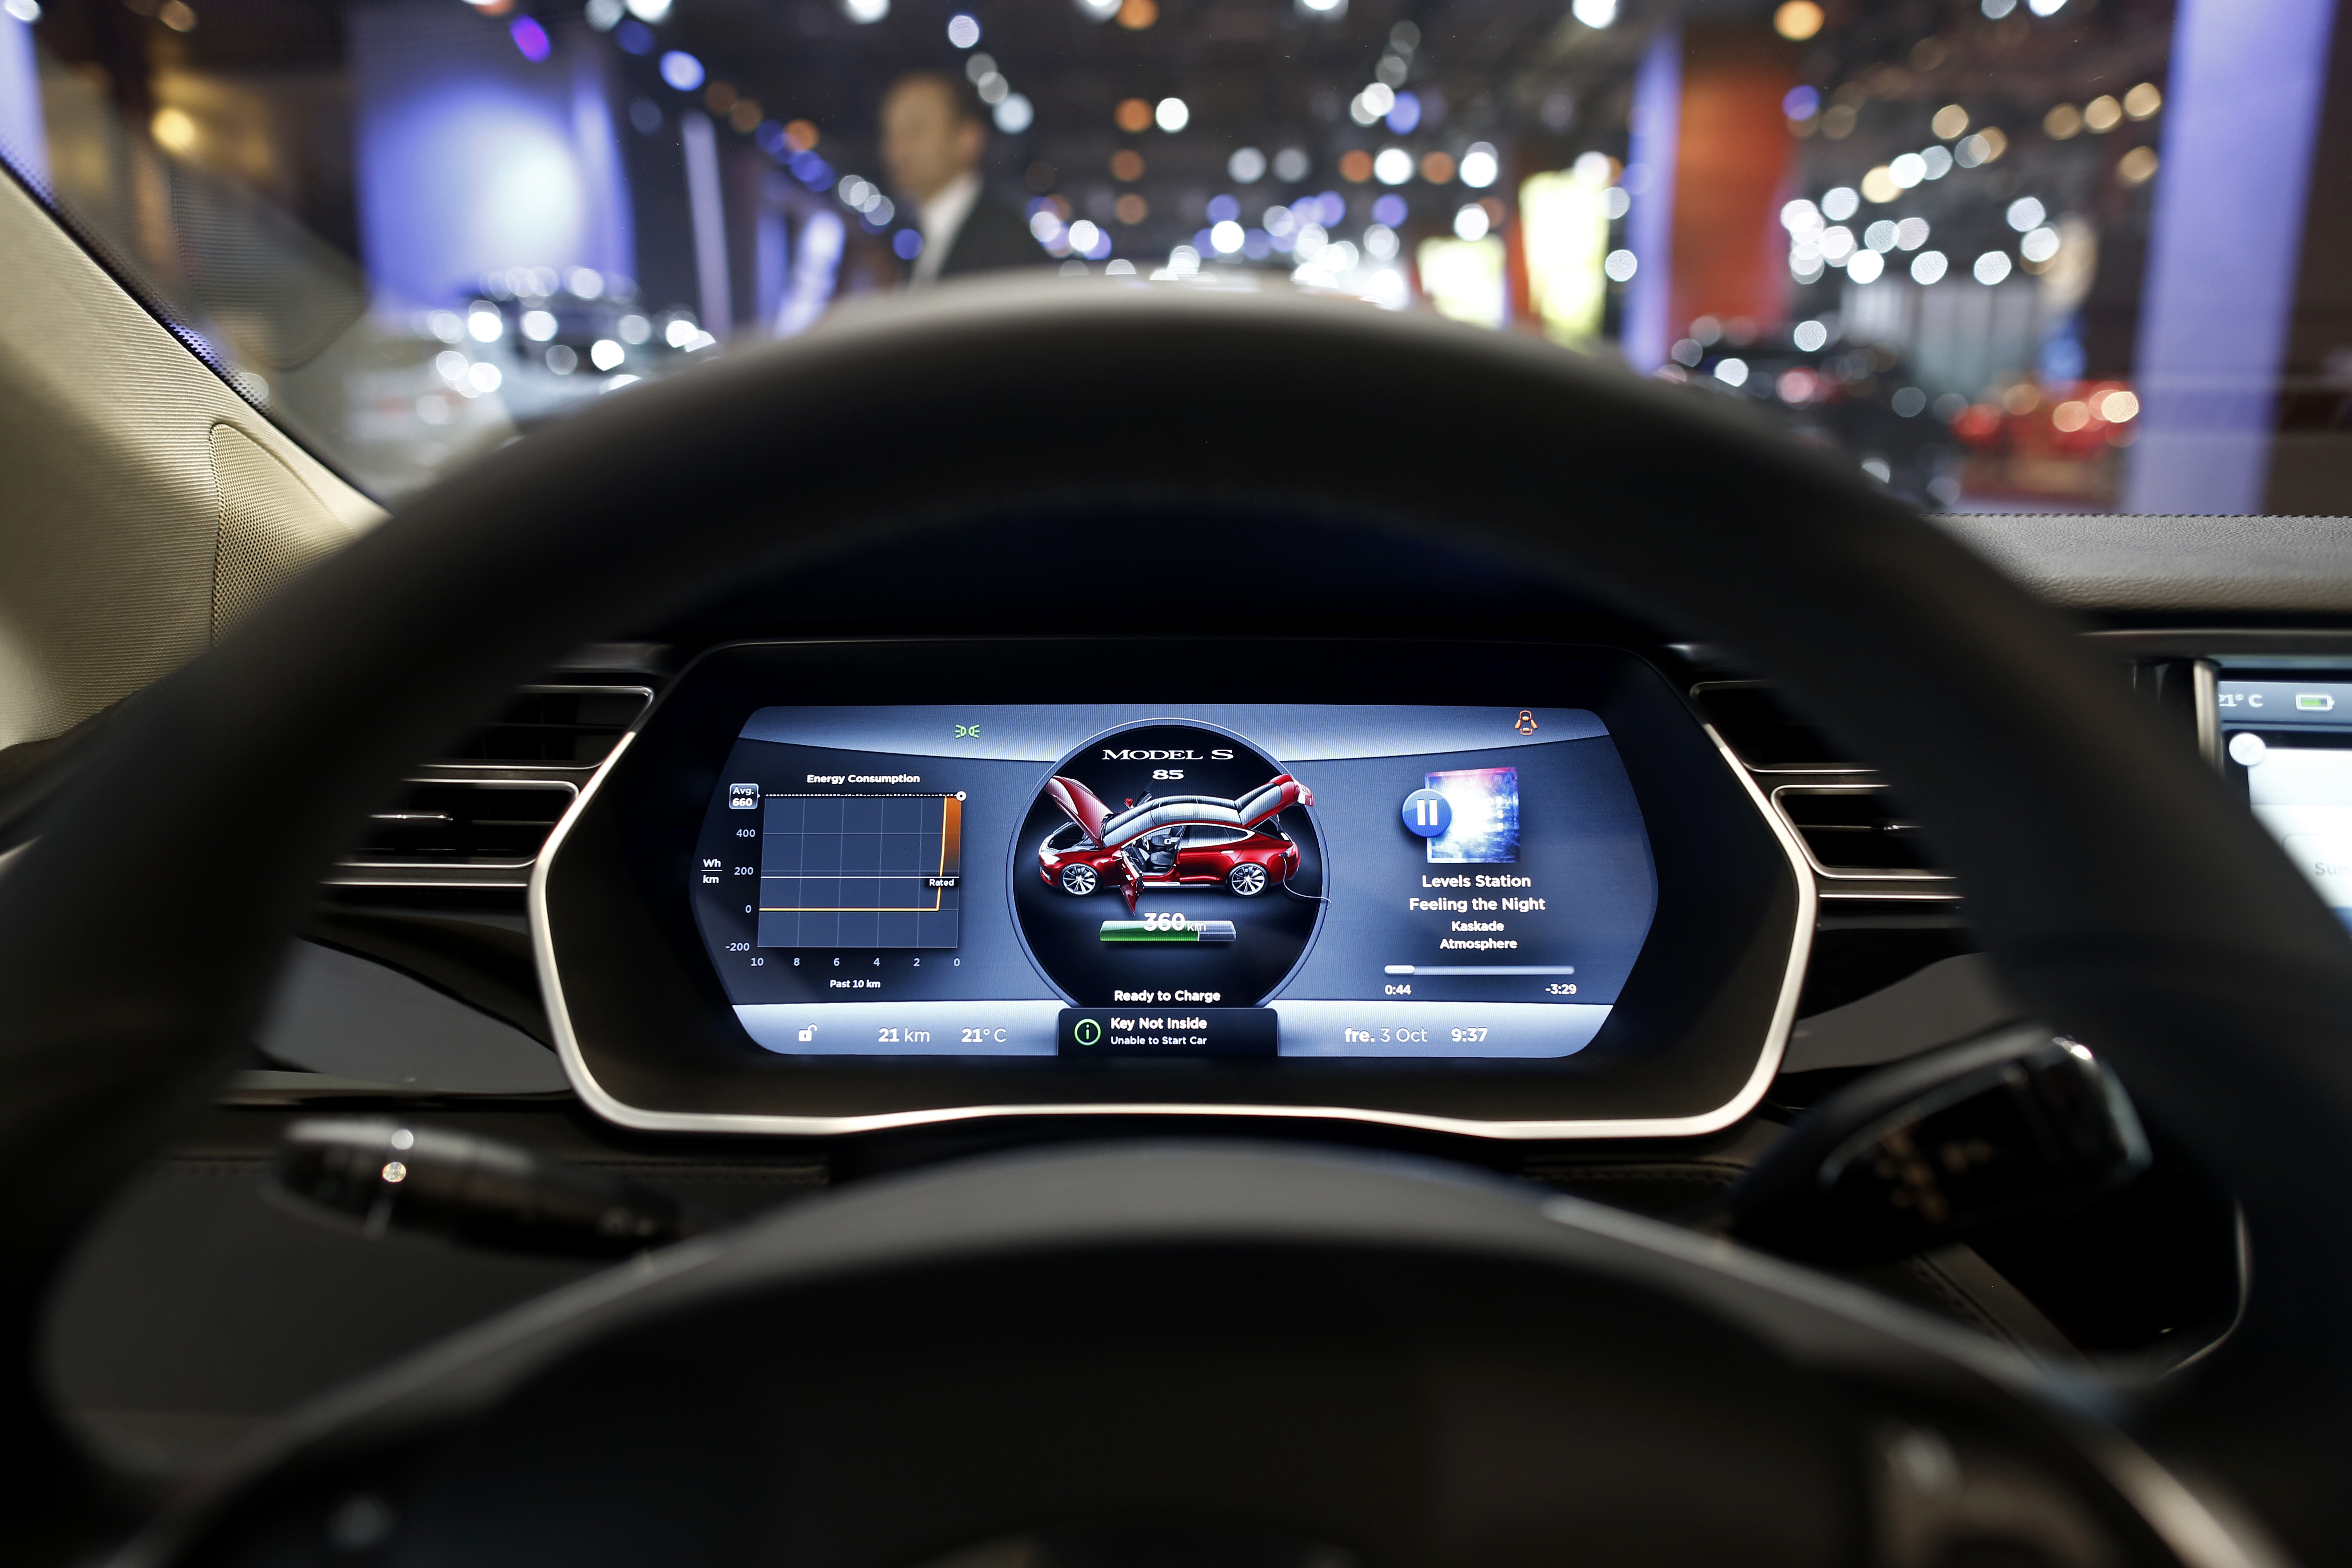 The driver's electronic dashboard sits illuminated inside a Tesla Model S automobile, produced by Tesla Motors Inc., at the Paris Motor Show on the final preview day in Paris, France, on Friday, Oct. 3, 2014.